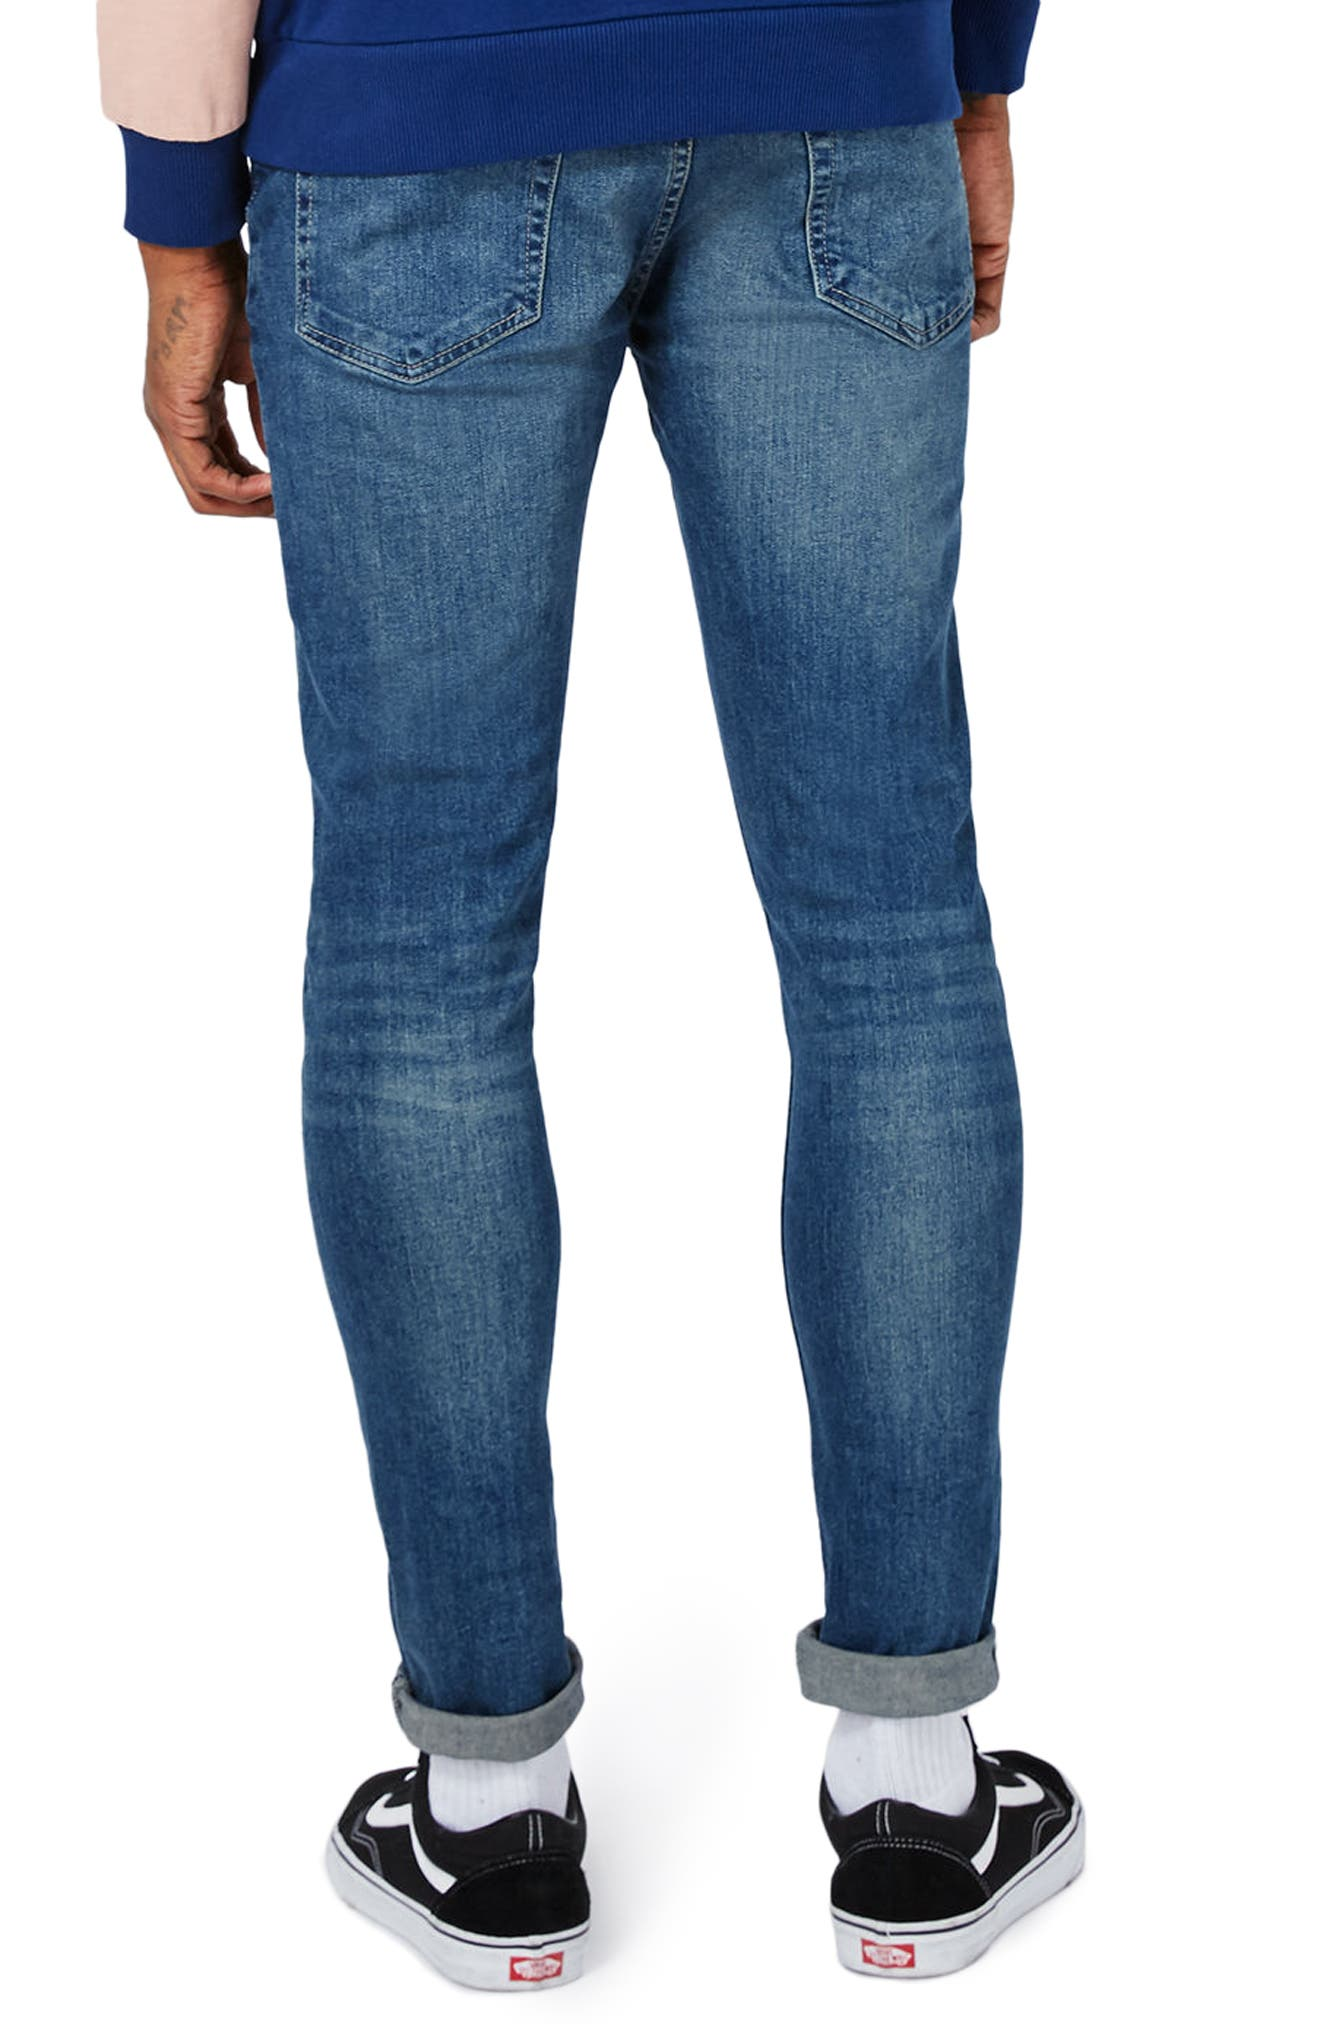 Stretch Skinny Jeans,                             Alternate thumbnail 2, color,                             420